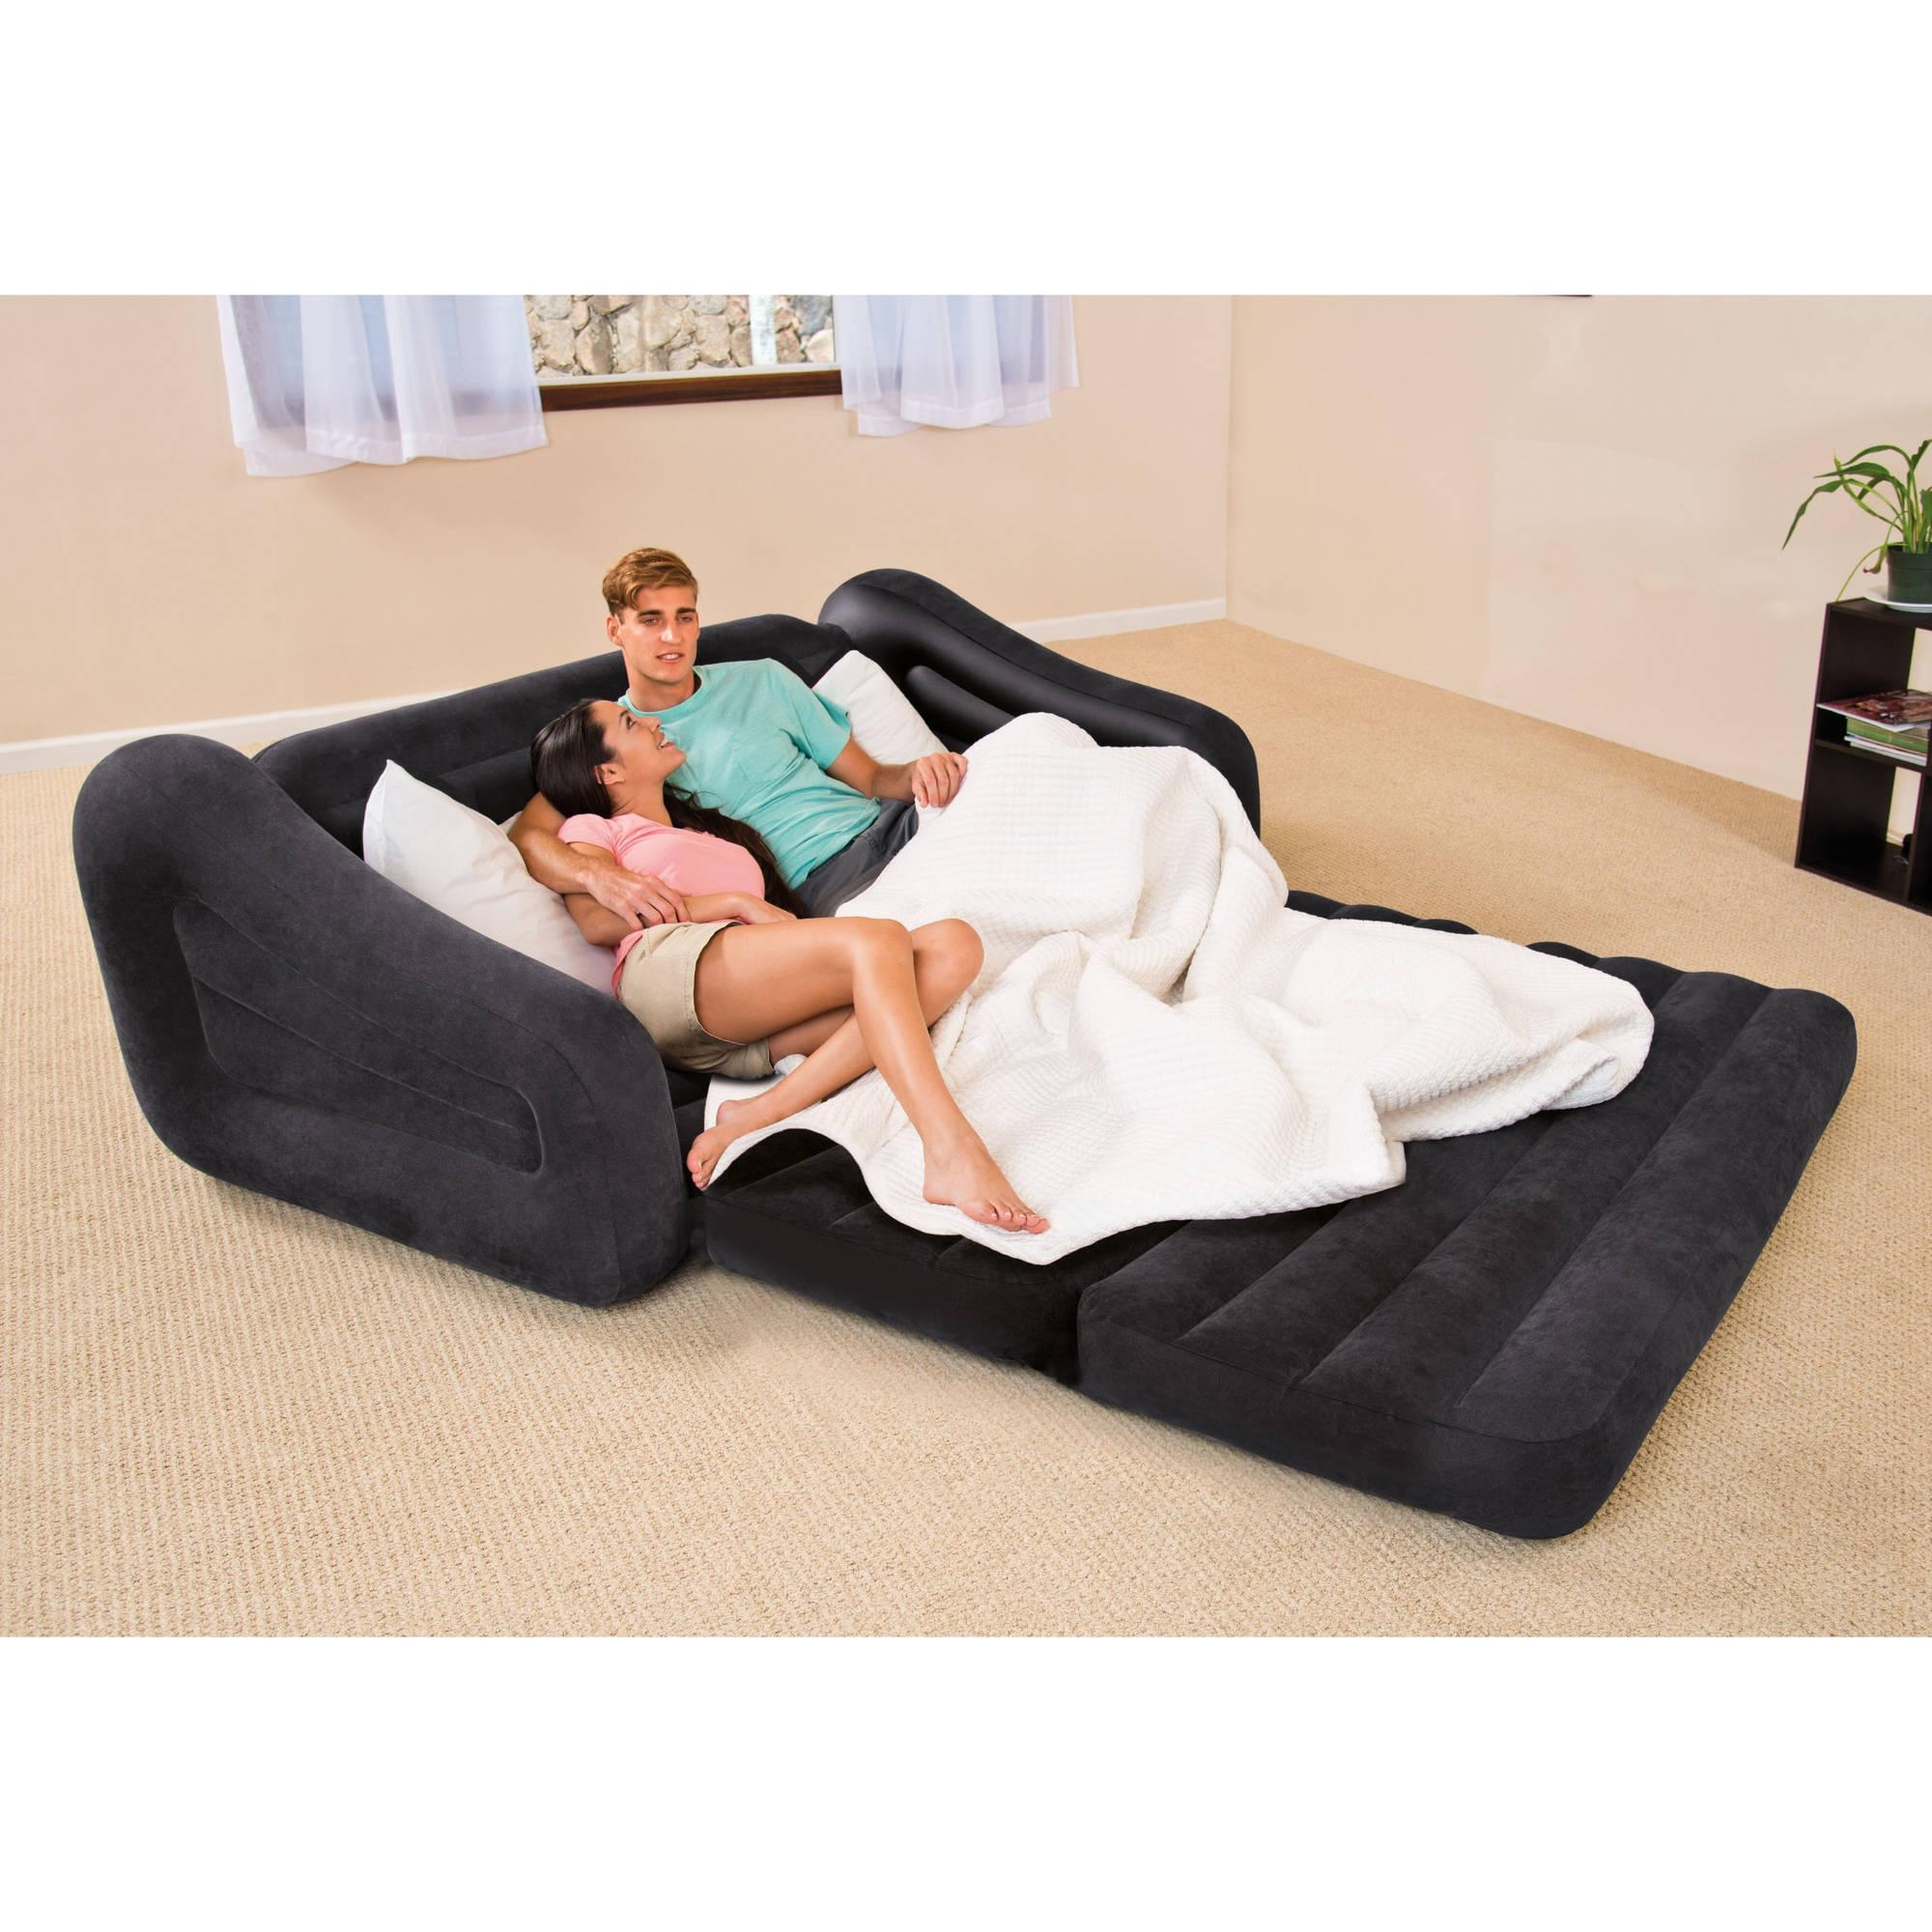 Intex Queen Inflatable Pull Out Sofa Bed – Walmart Intended For Pull Out Sofa Chairs (Image 6 of 20)